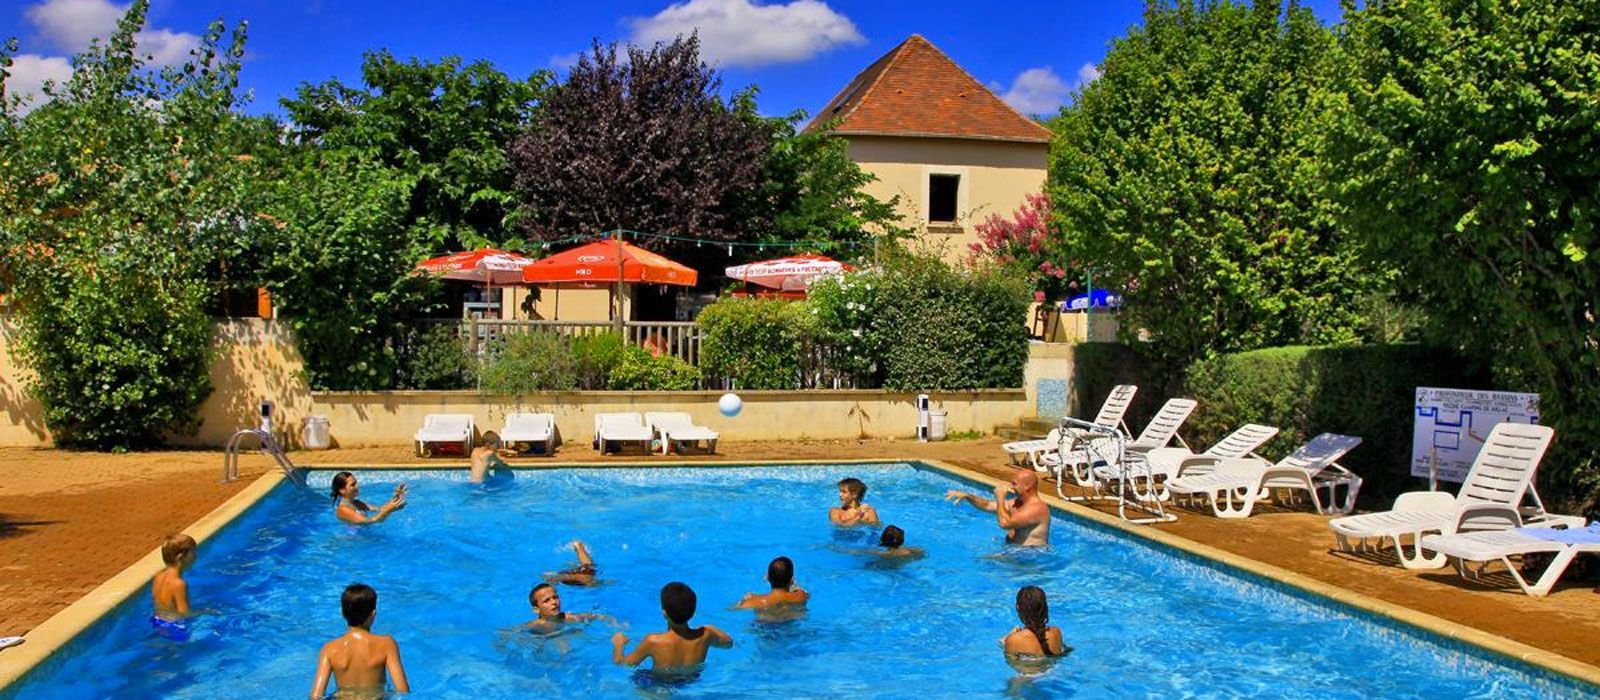 Camping Swimming Pool Dordogne